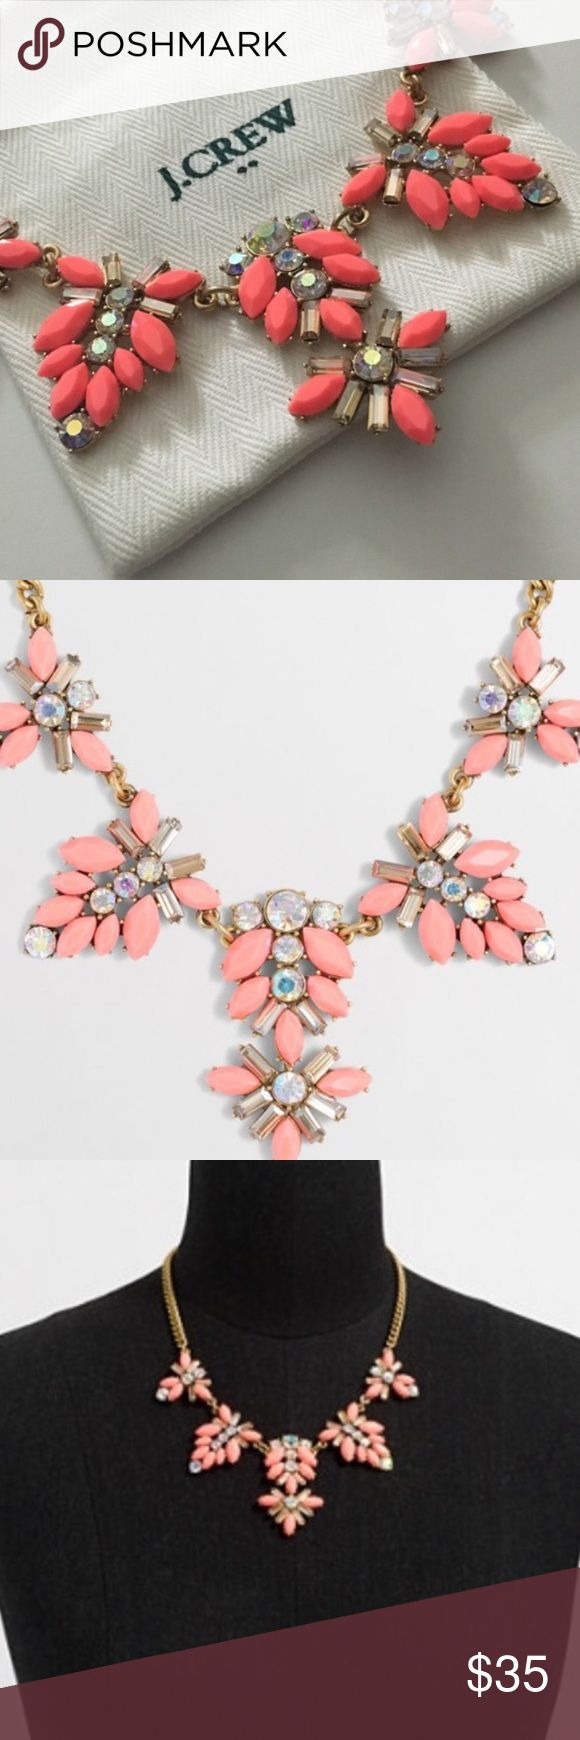 J Crew Necklace ✨ Bright pink J Crew necklace ✨ New with tags ✨ Comes with jewelry pouch ✨ J. Crew Jewelry Necklaces